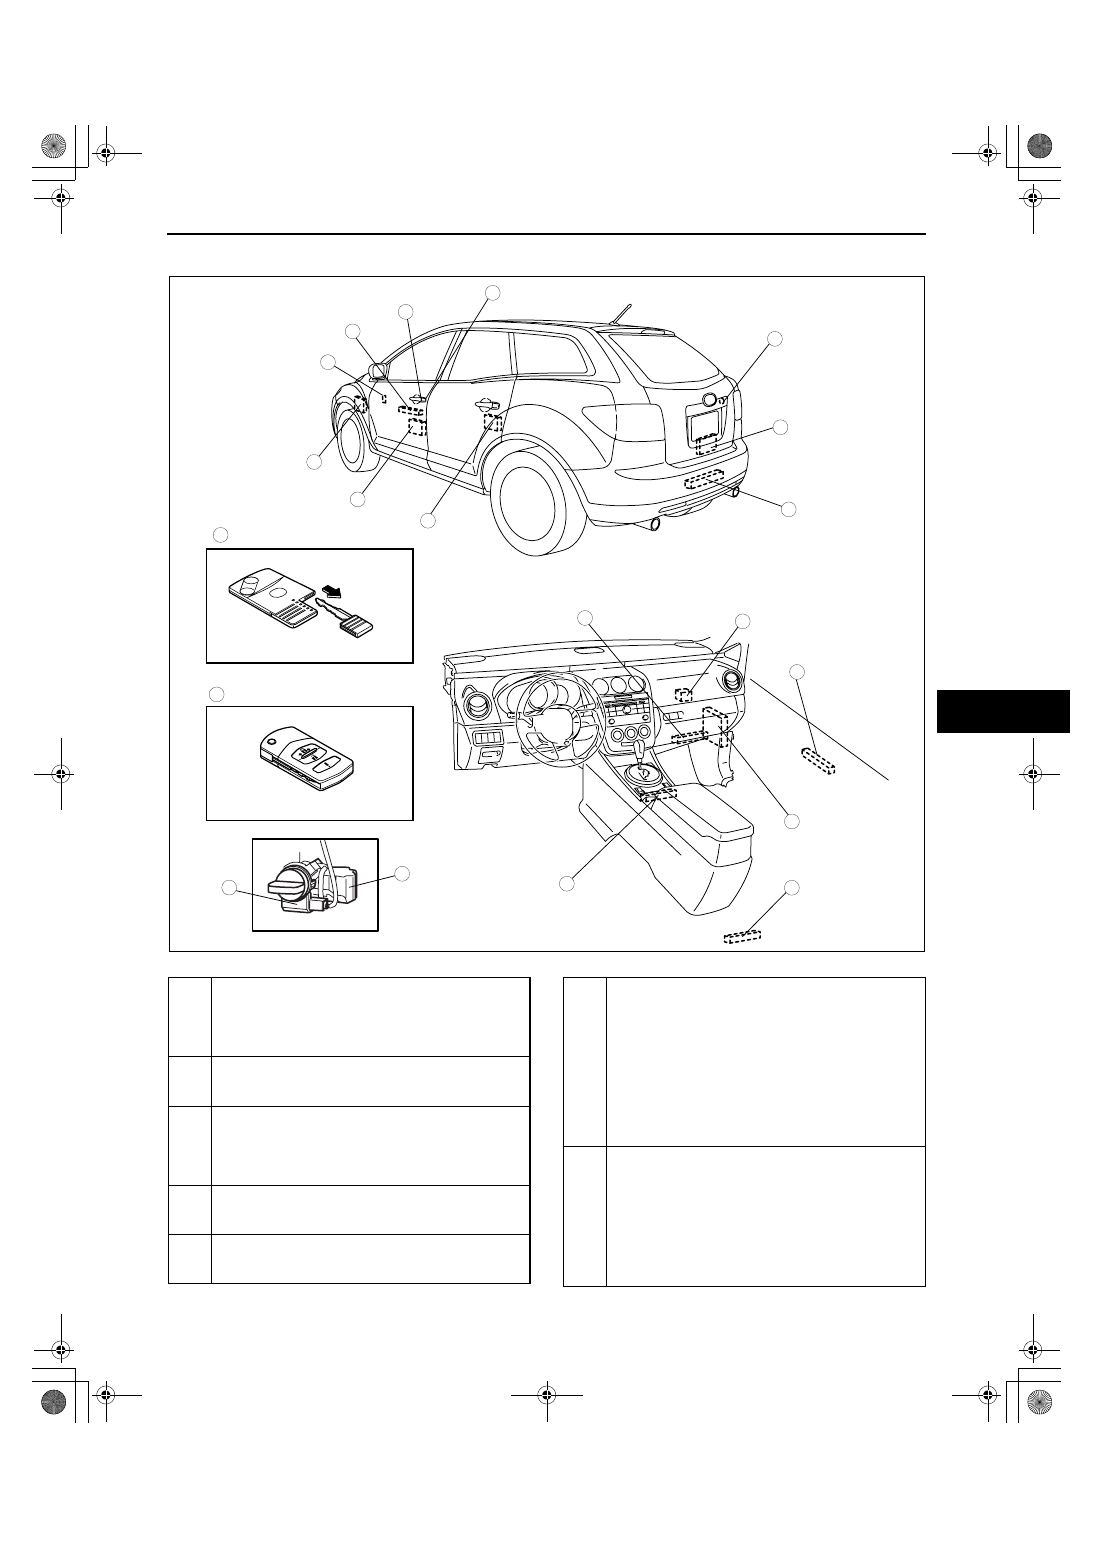 Mazda 3 Service Manual: Front Door Latch And Lock Actuator RemovalInstallation